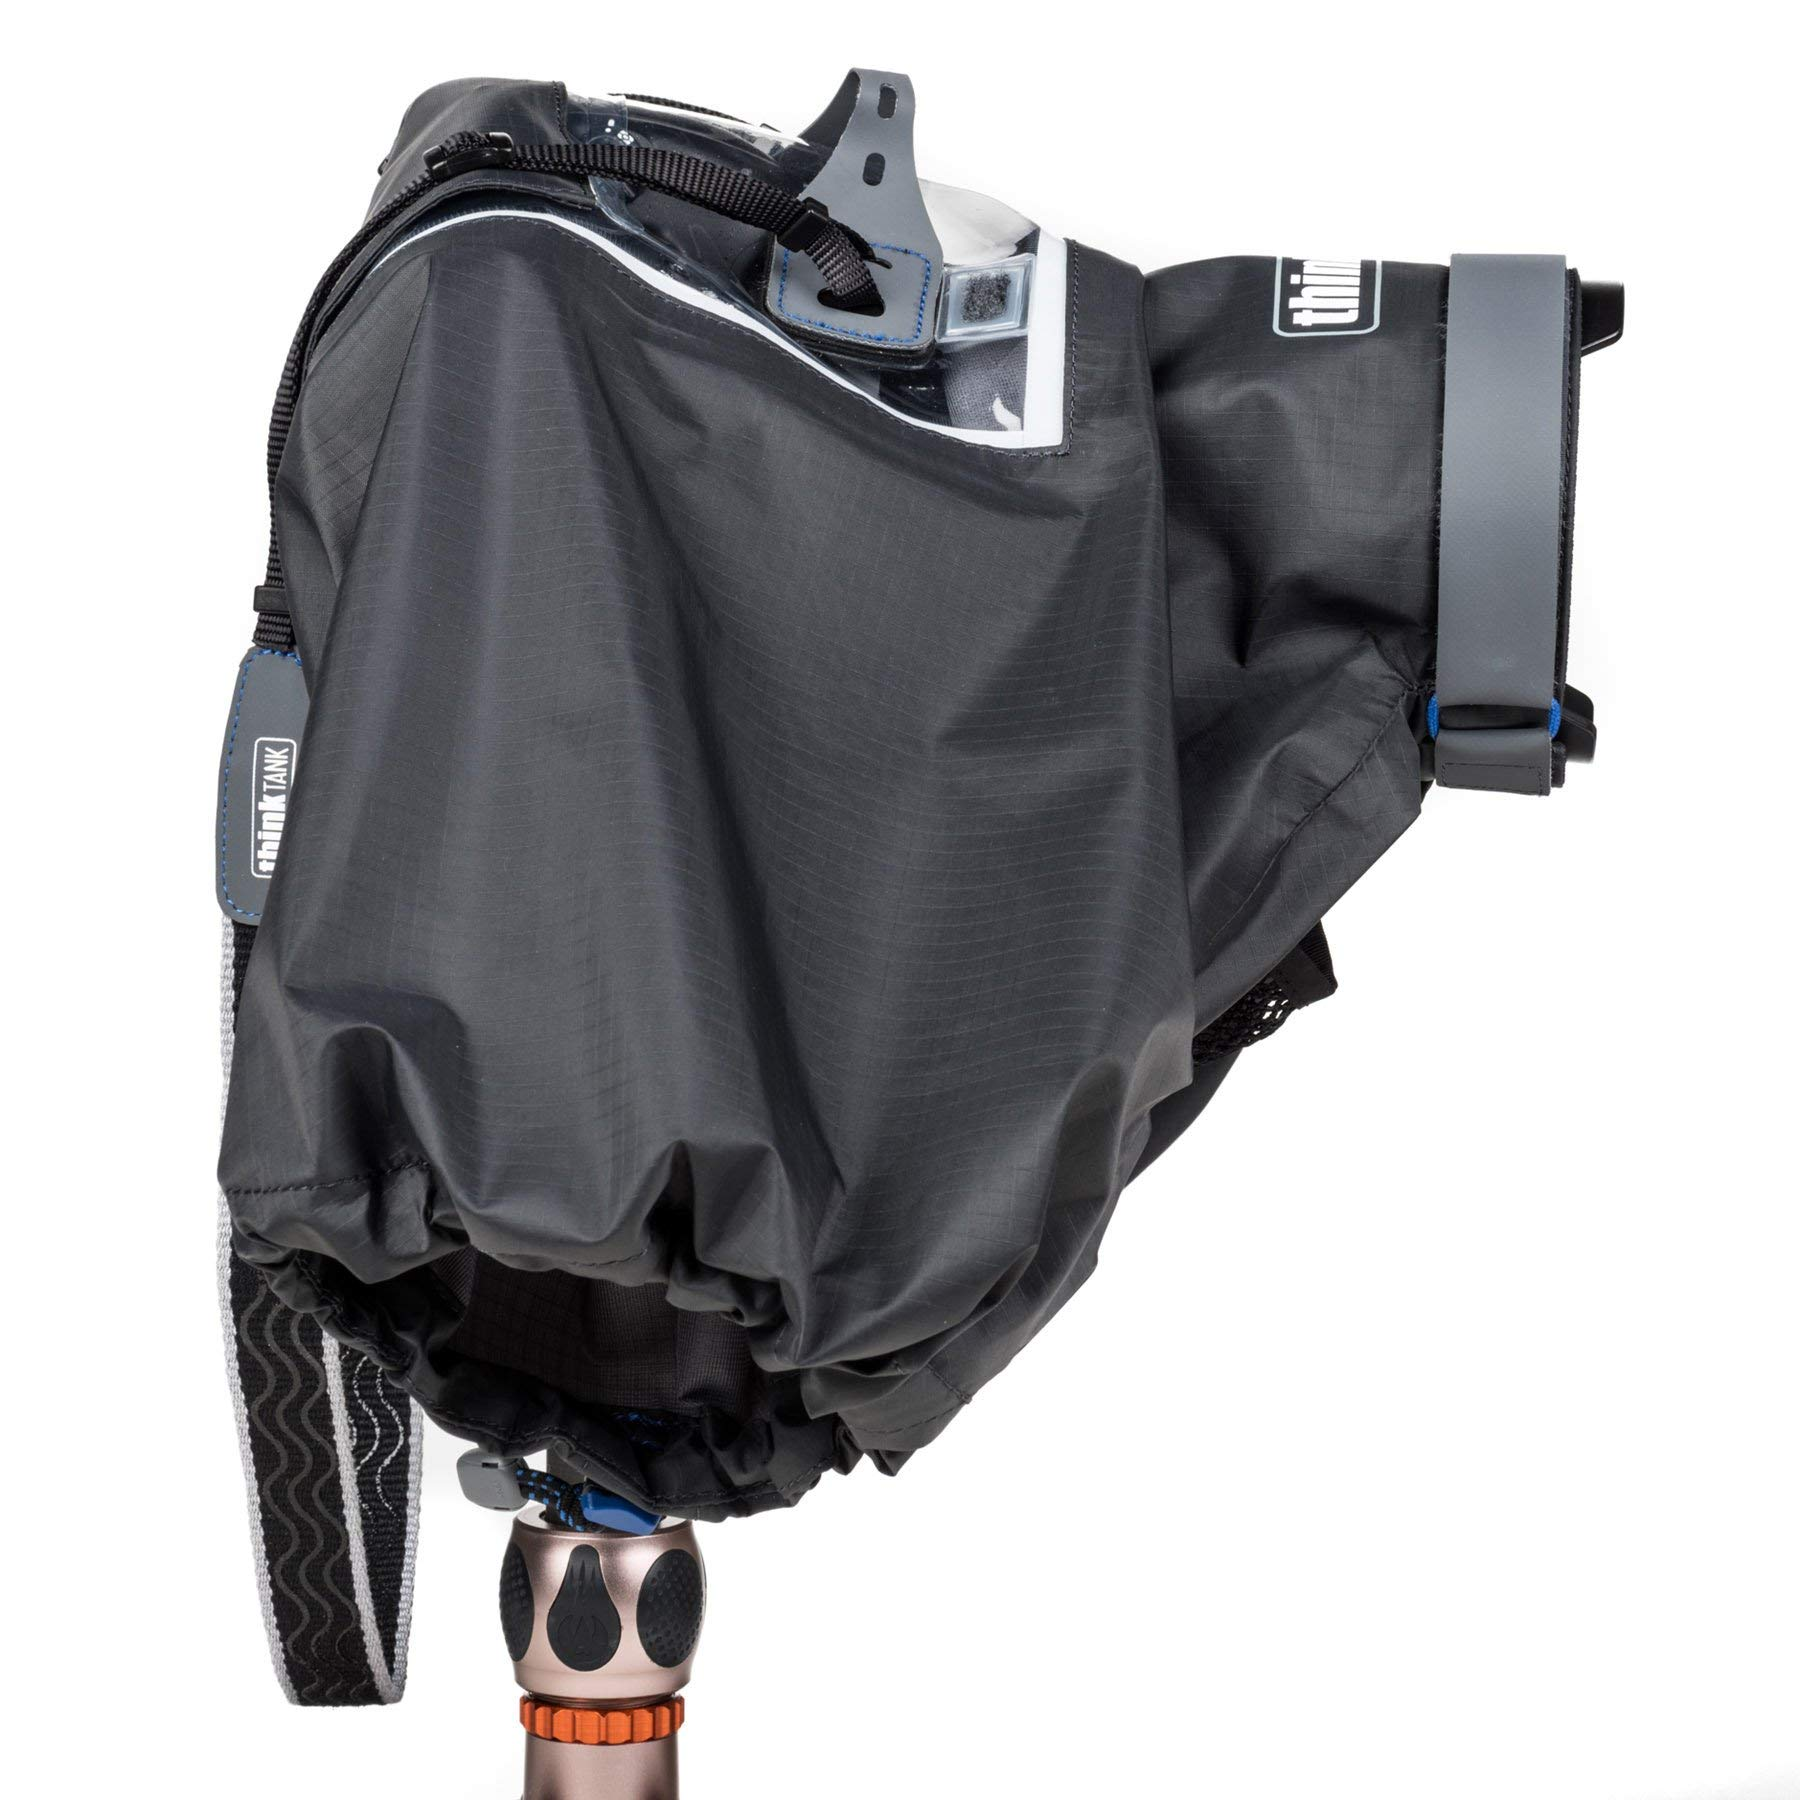 Think Tank Photo Hydrophobia D 24-70 V3 Camera Rain Cover for DSLR Camera with 24-70mm f/2.8 Lens by Think Tank (Image #8)